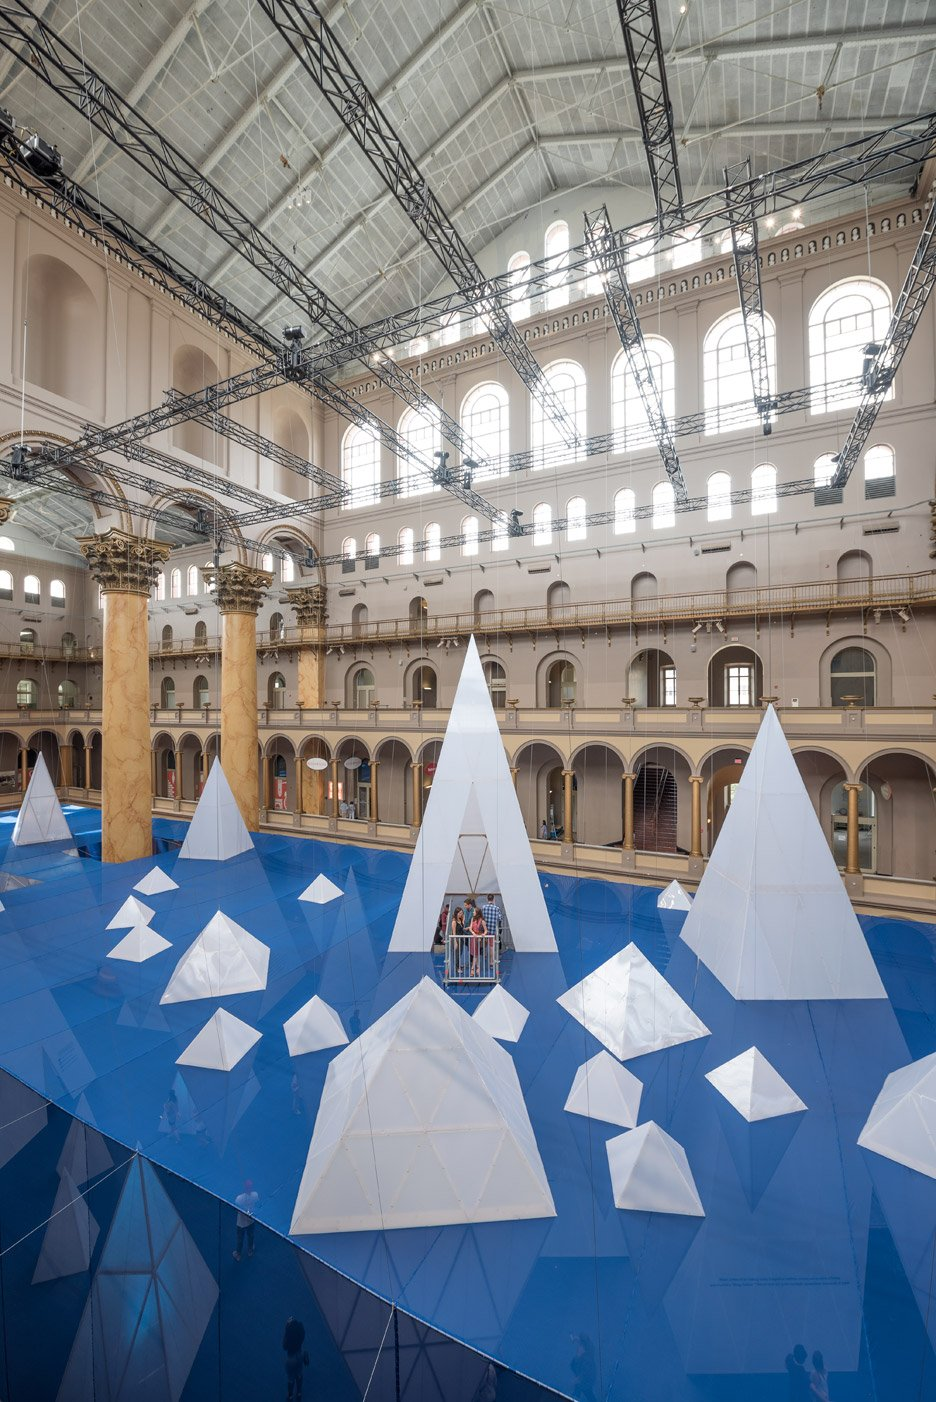 icebergs-installation-james-corner-tim-schenck-washington-dc-dezeen_dezeen_936_11